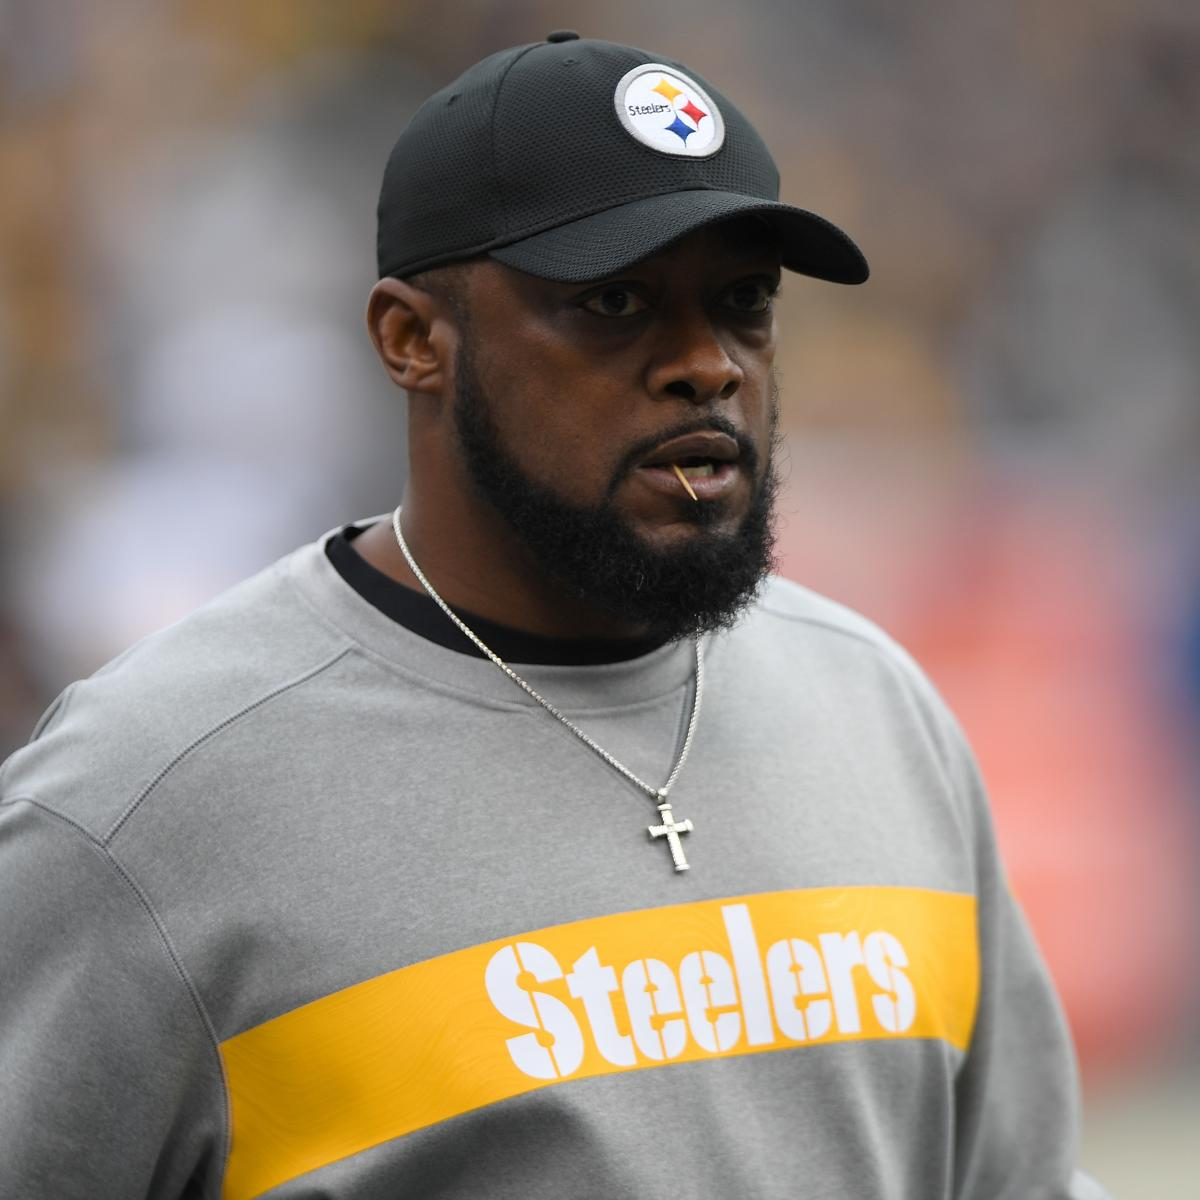 Pittsburgh Steelers Mike Tomlin S New Contract Ushers In: Art Rooney II On Mike Tomlin Contract: 'Cross That Bridge